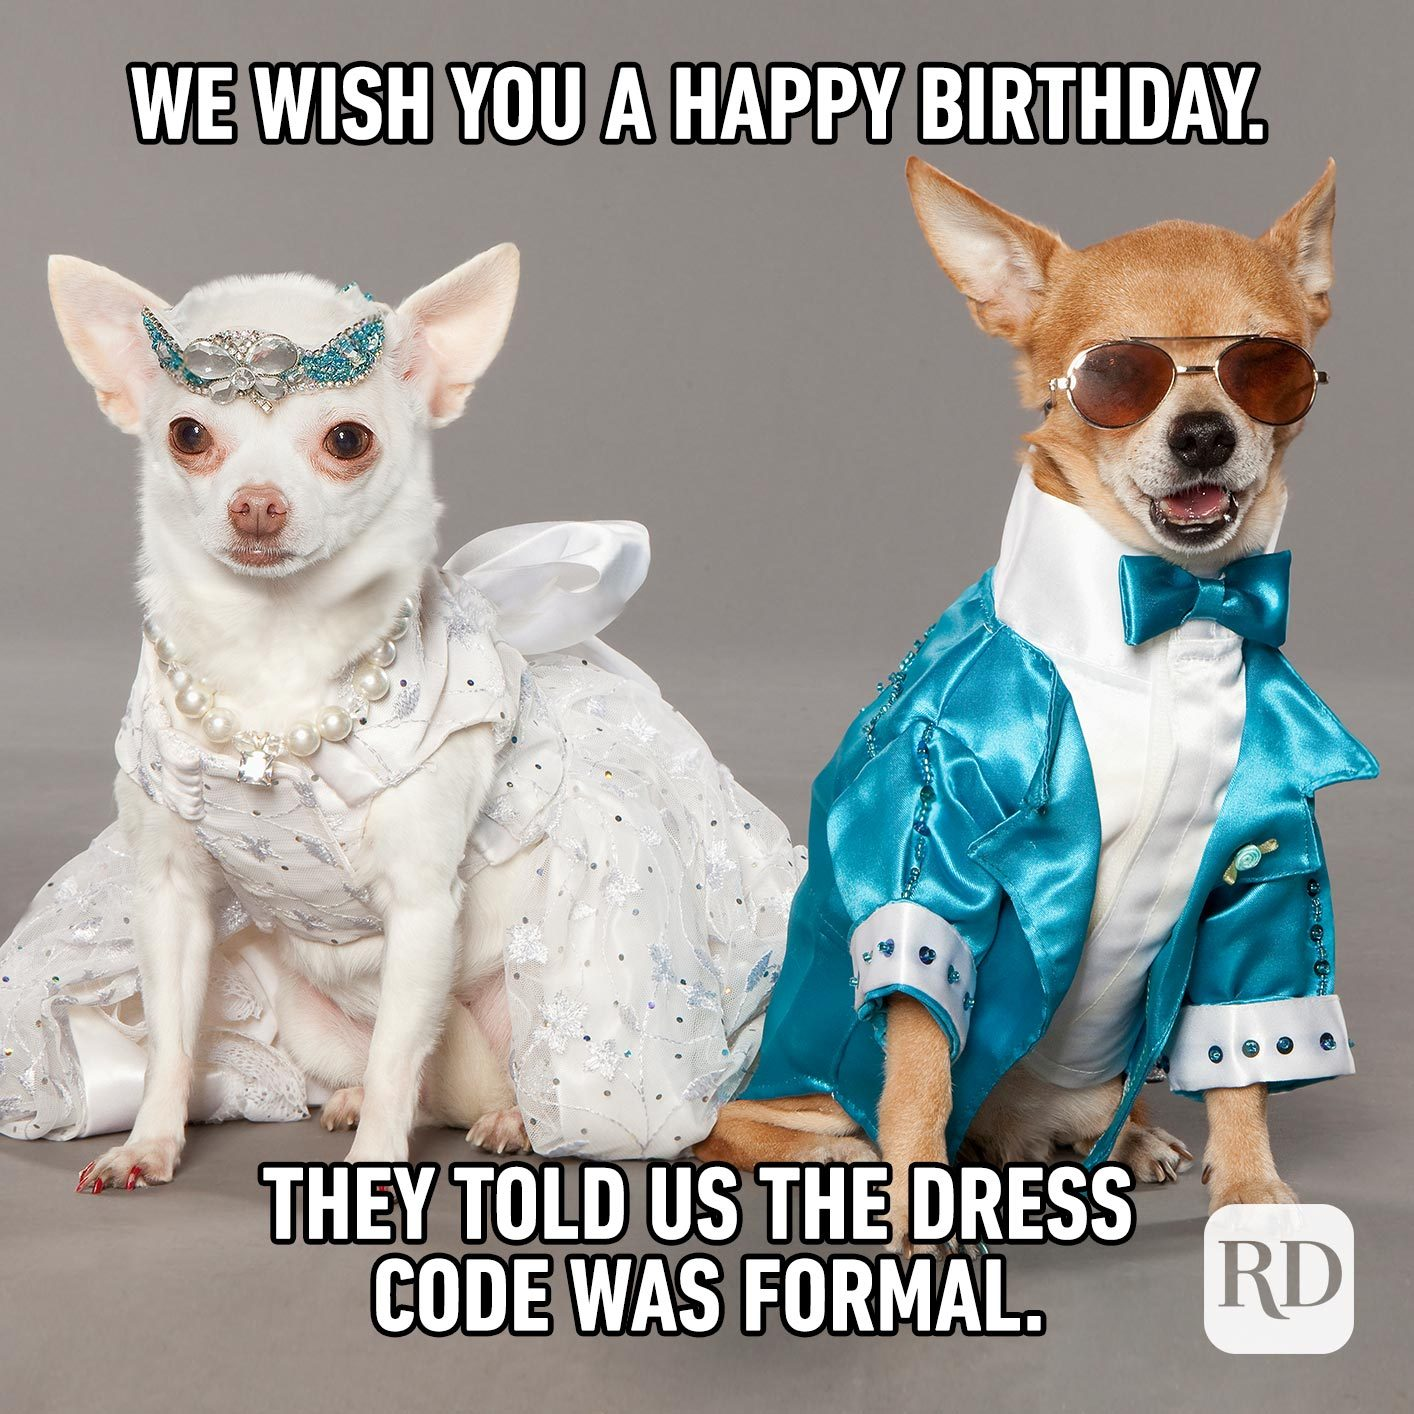 We wish you a Happy Birthday. They told us the dress code was formal.